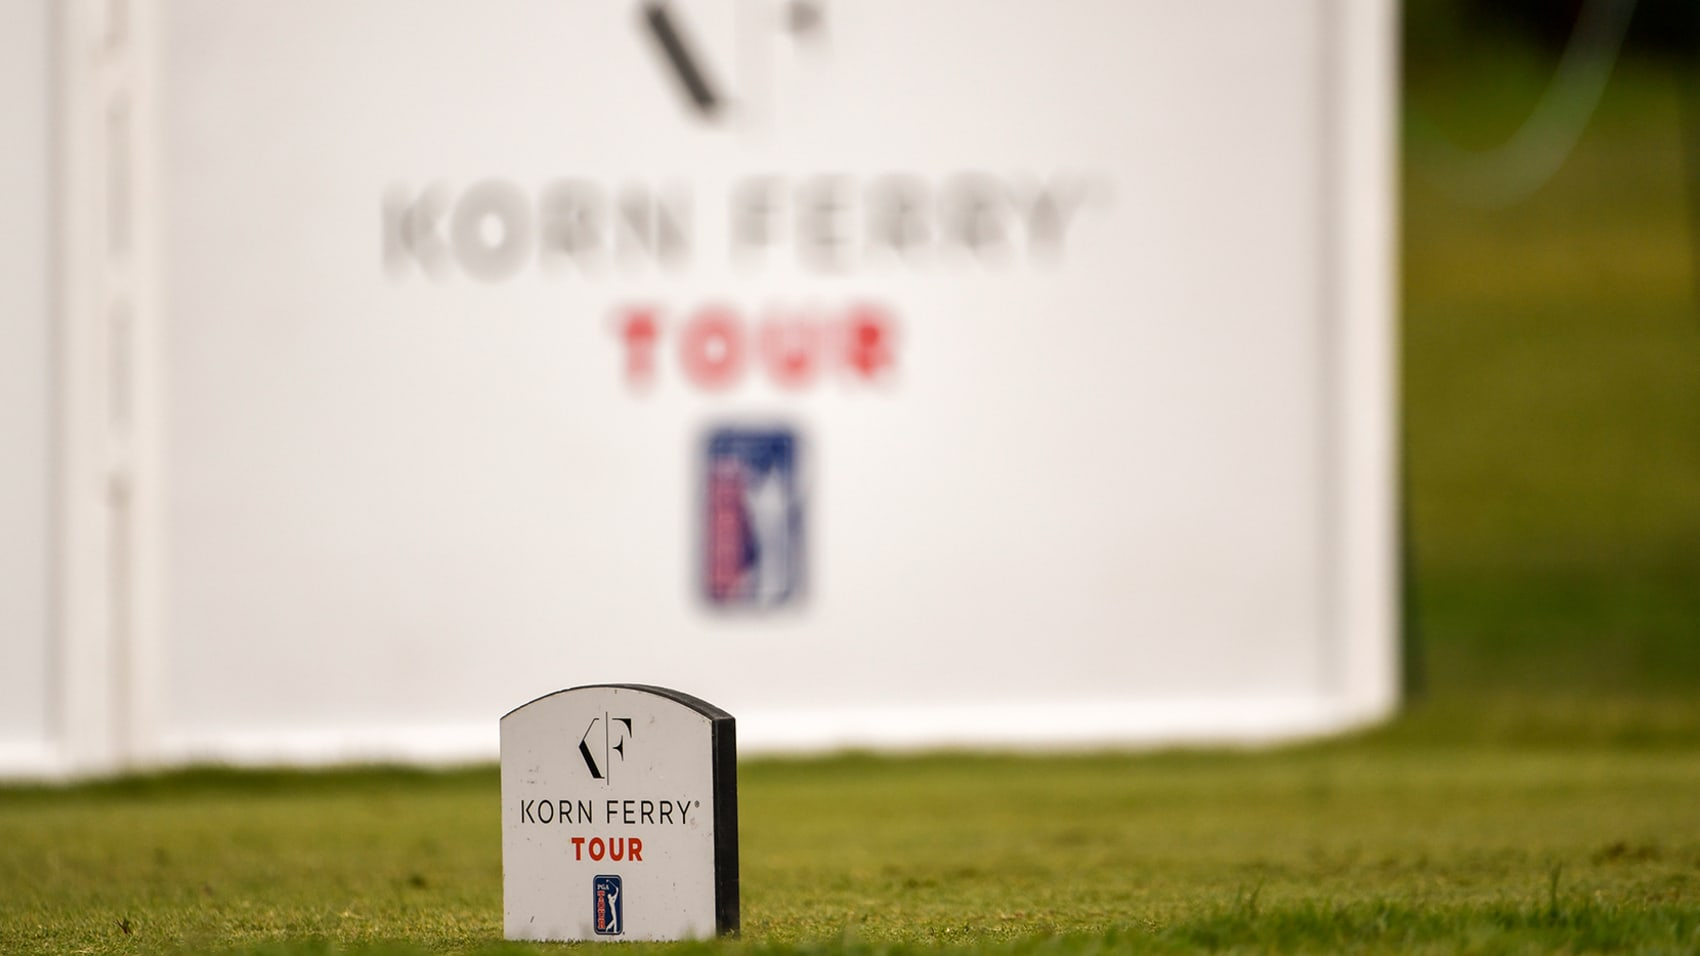 The PGA TOUR announced today the Korn Ferry Tour's 2022 schedule, which features 26 tournaments across four countries and 18 different states. (Tracy Wilcox/PGA TOUR)